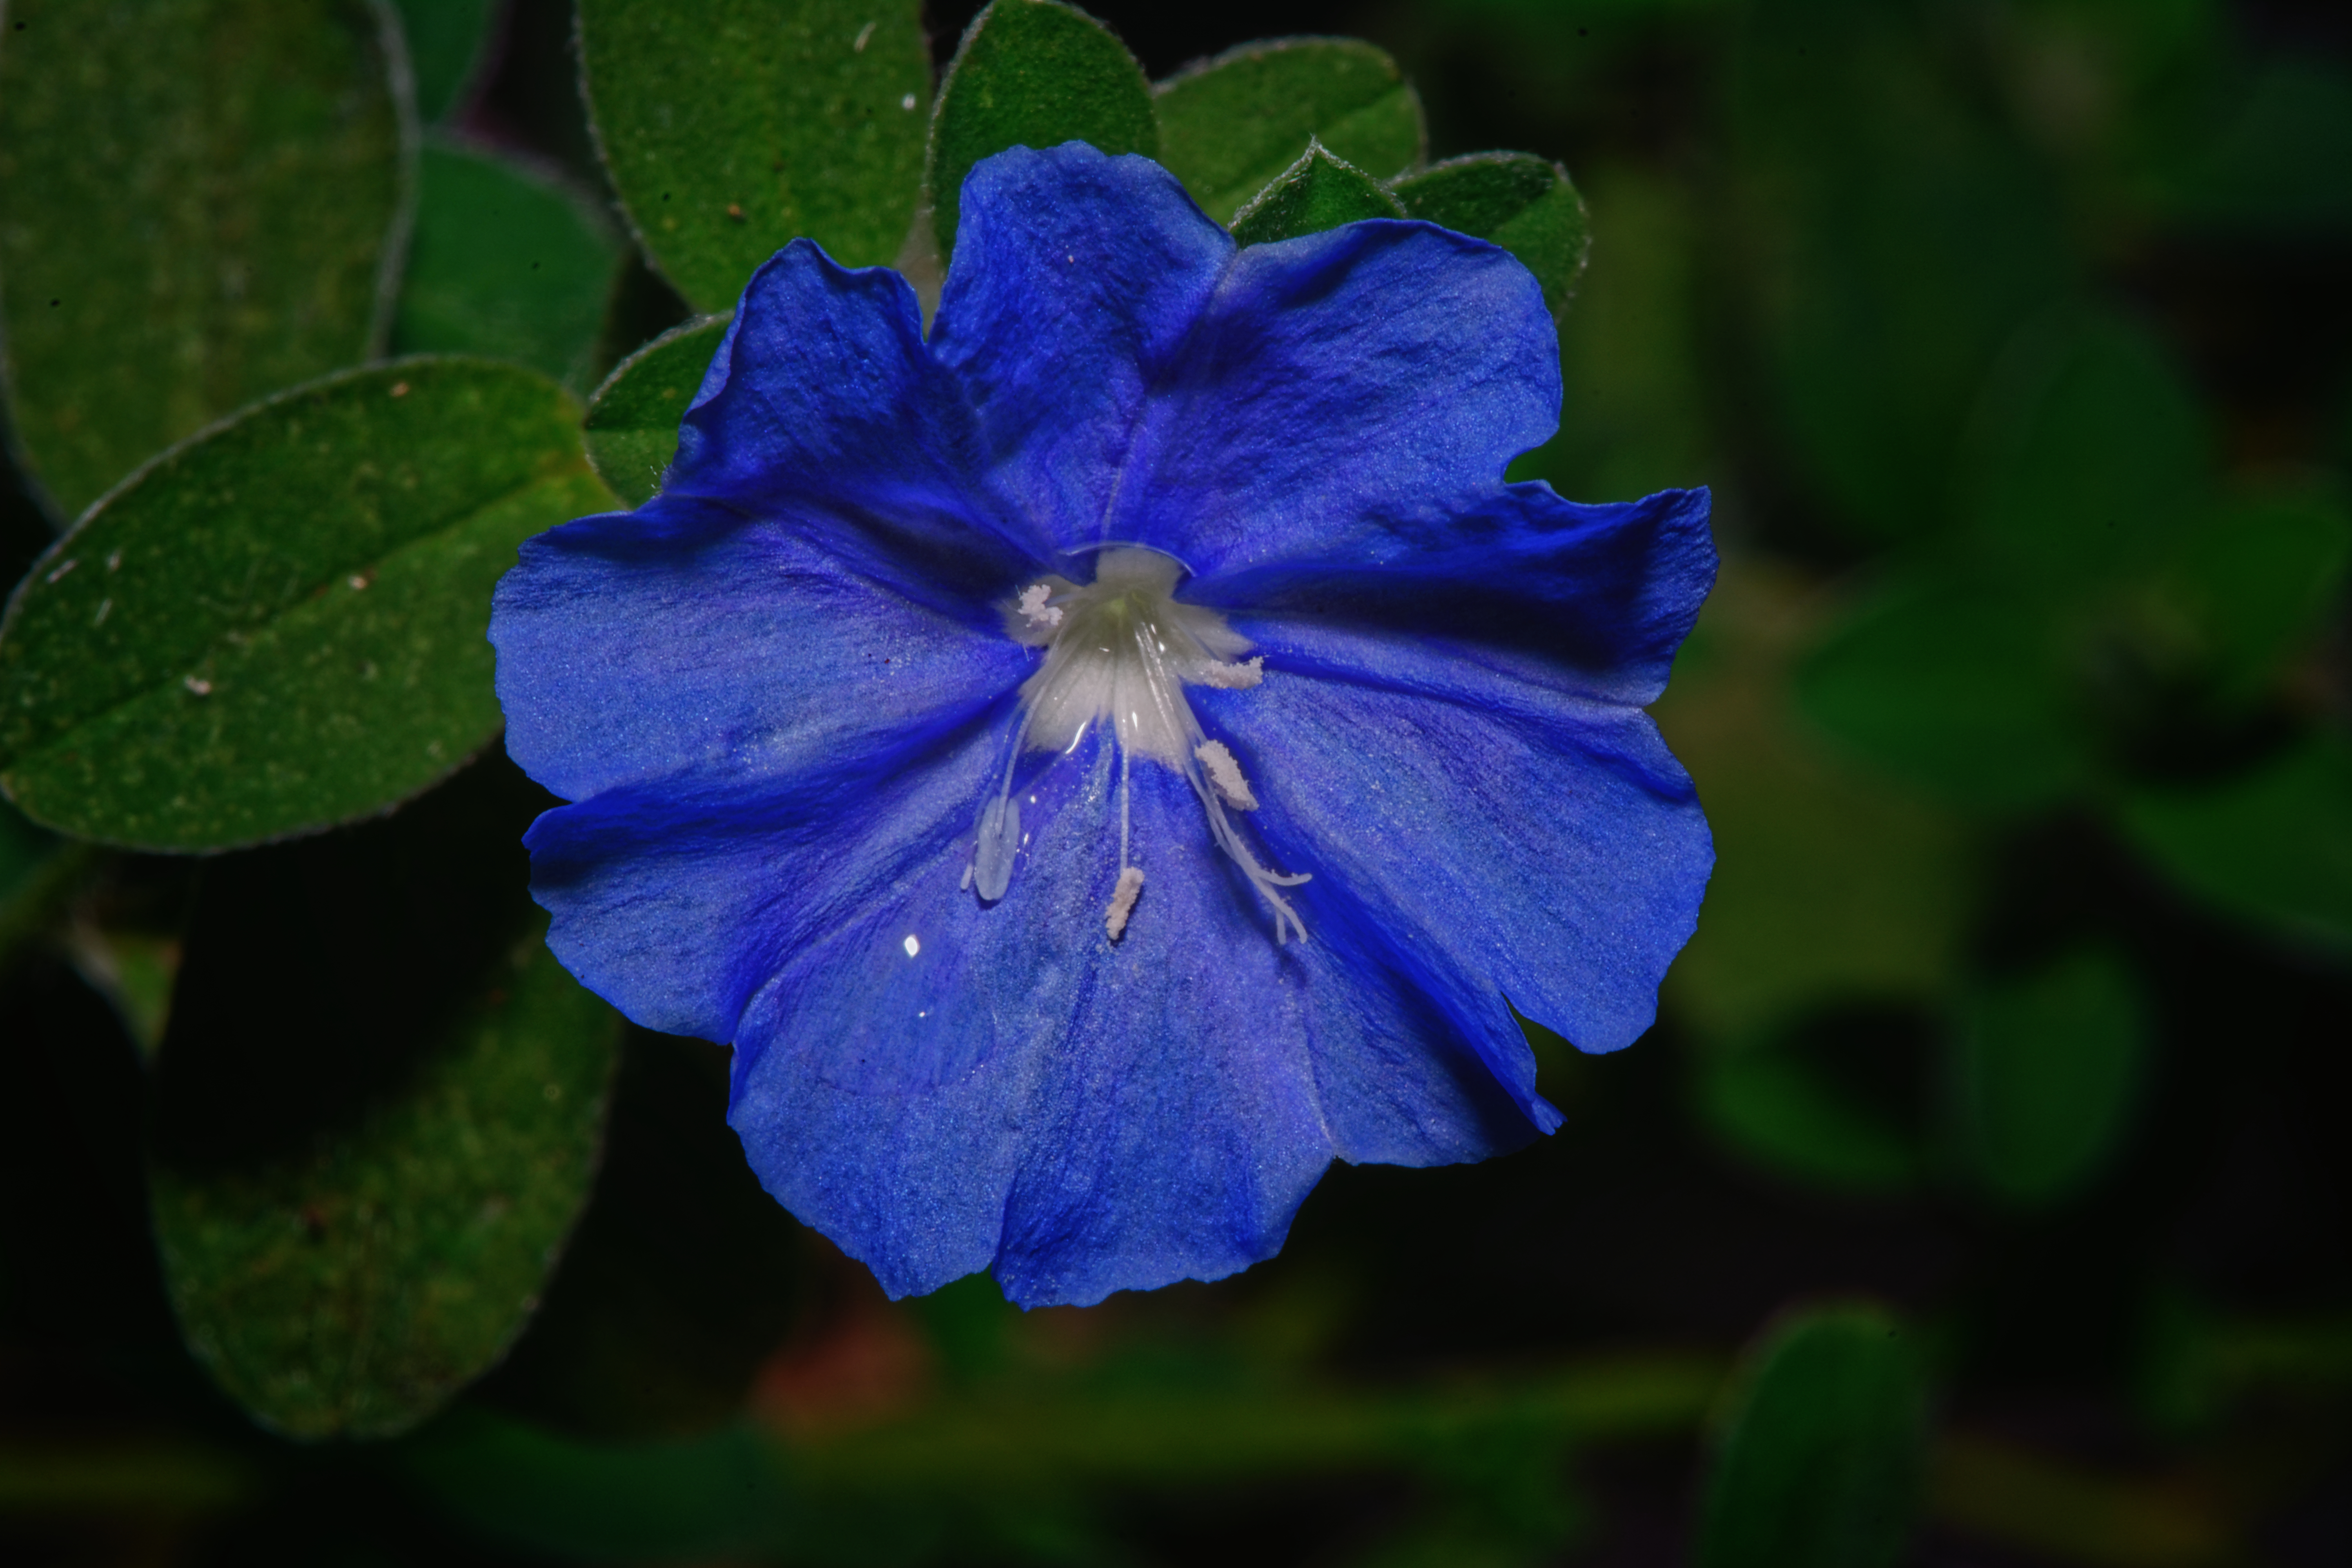 Small Blue Flower - 0233